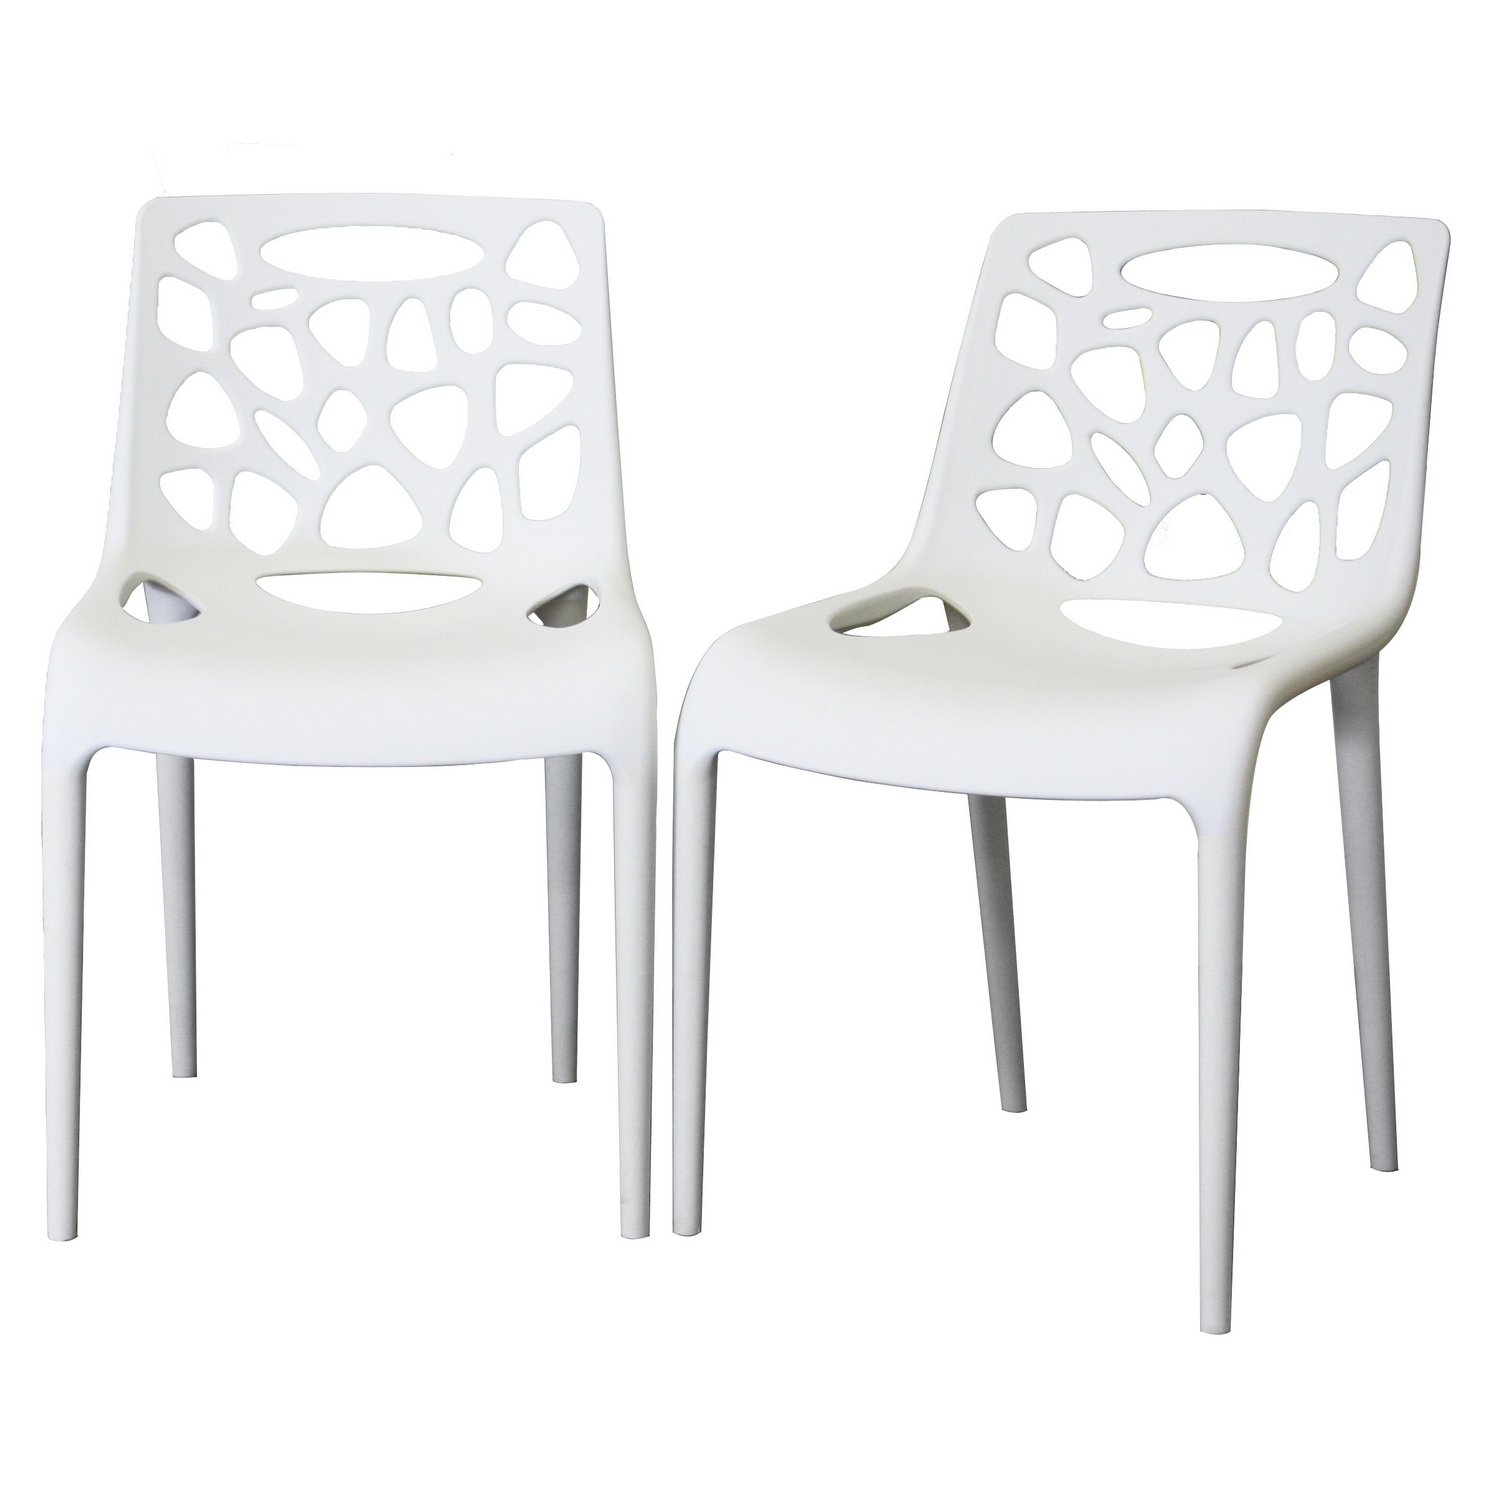 Modern White Dining Chair White Modern Dining Chair Chair Pads And Cushions